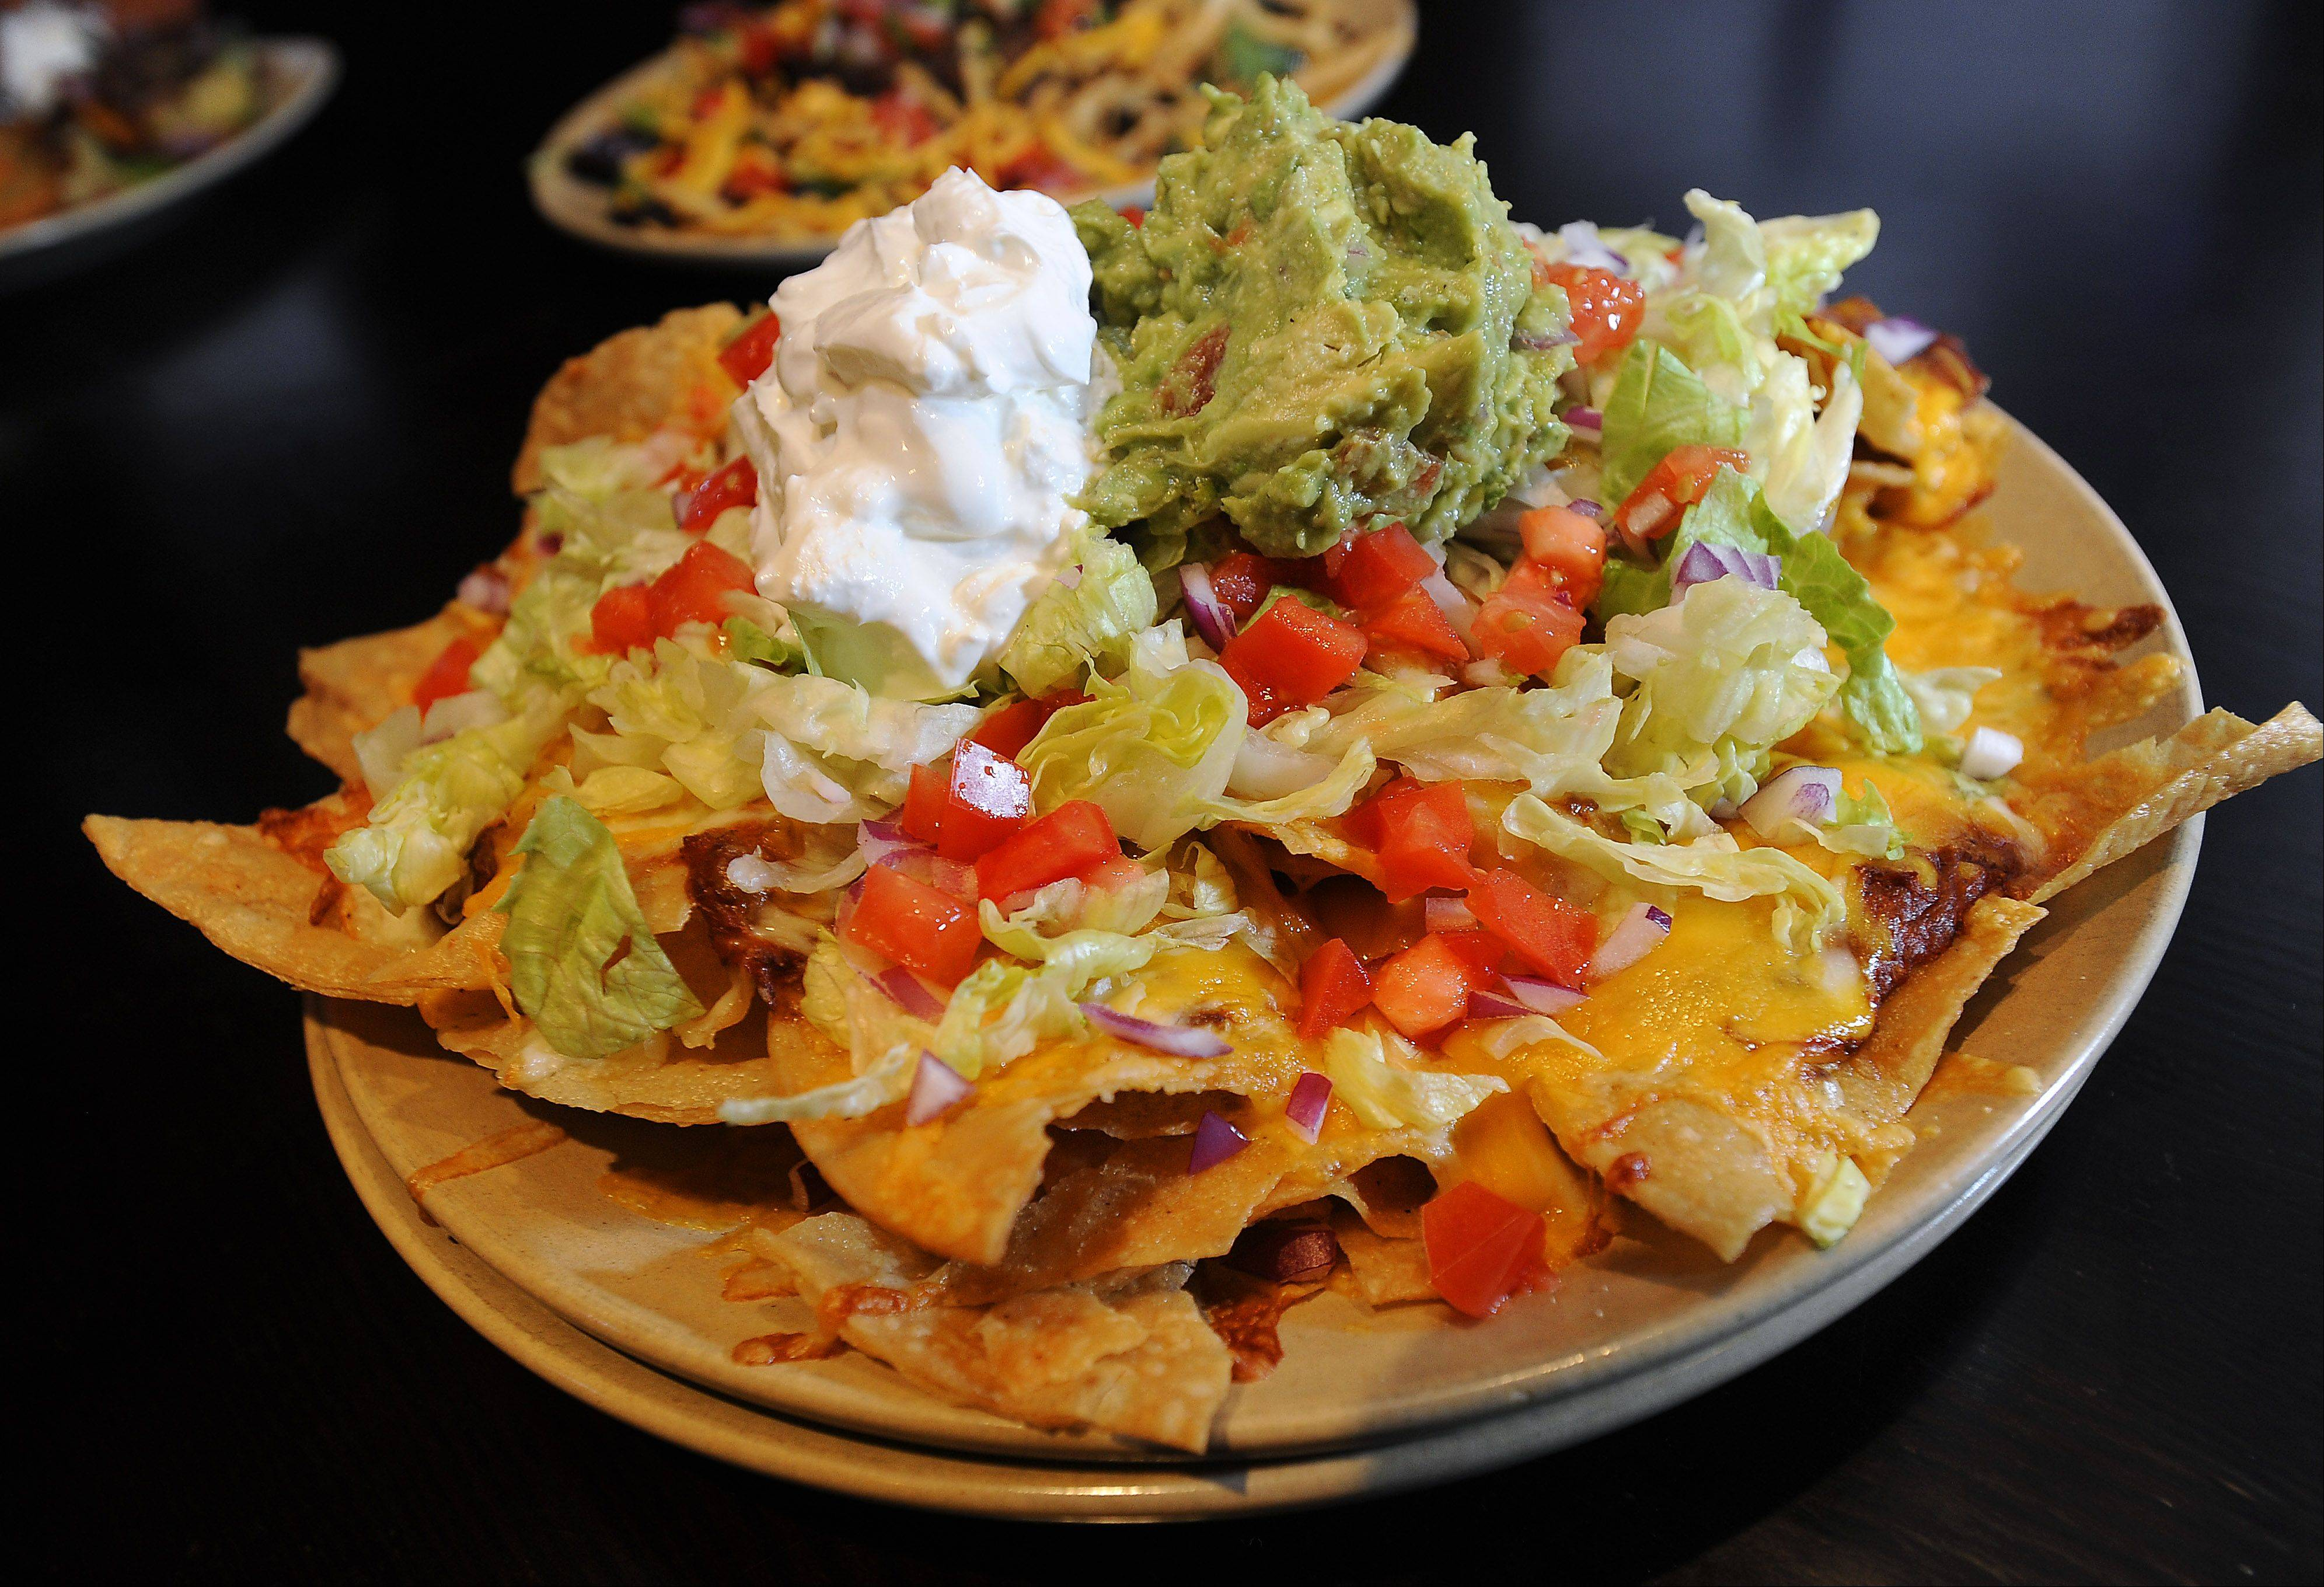 Nachos are a crowd favorite at McMae's Tavern & Grill in Bartlett.